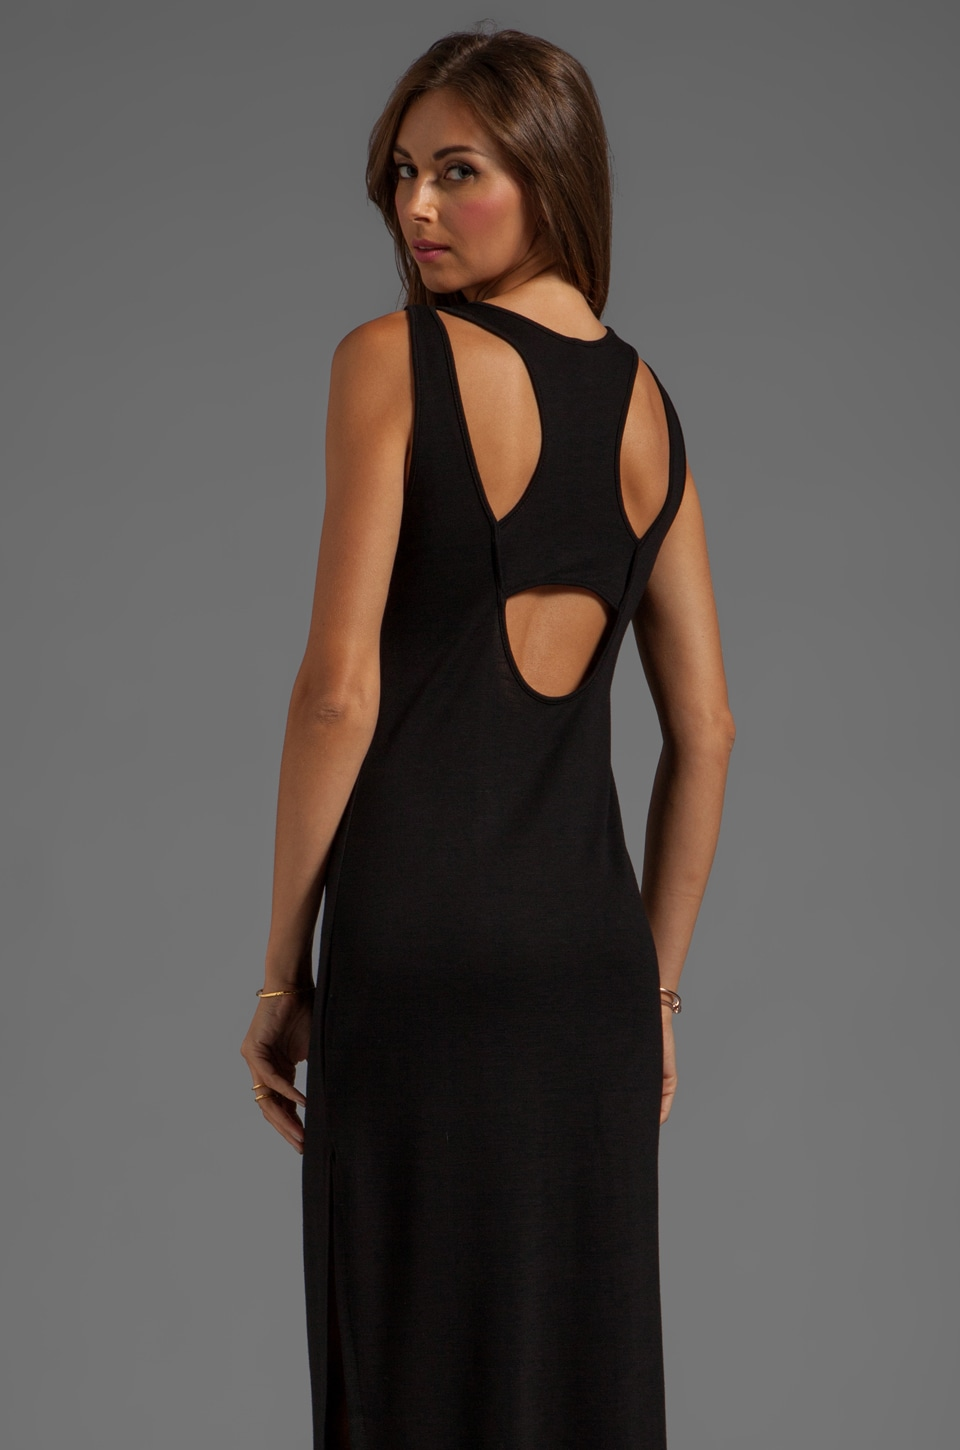 Lanston Cutout Racerback Dress in Black